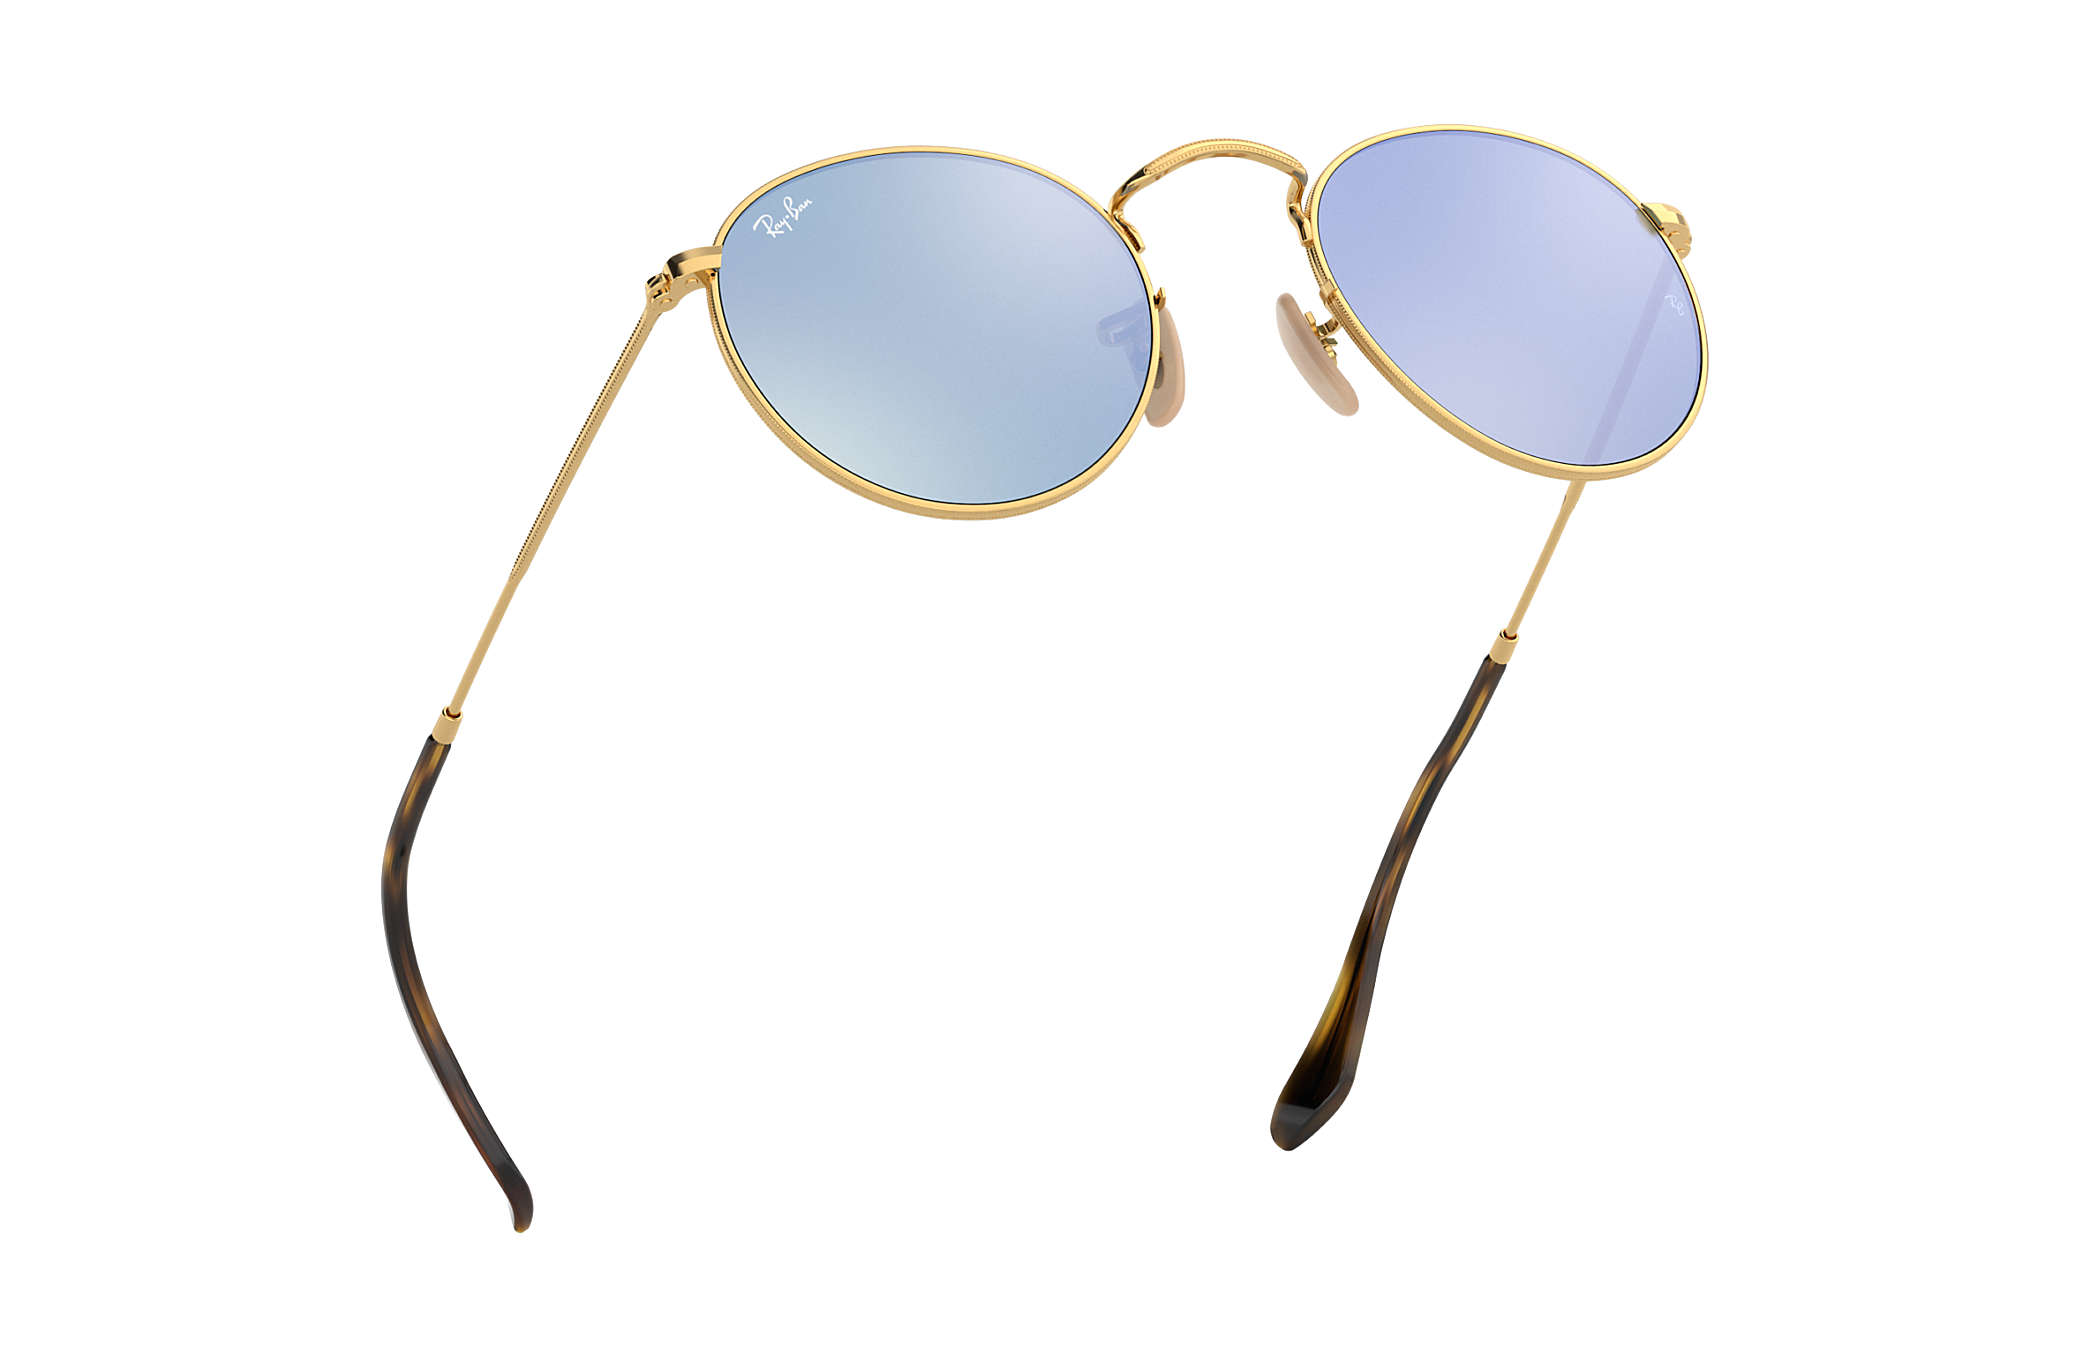 bb13047b00 Ray-Ban Round Flat Lenses RB3447N Gold - Metal - Silver Lenses ...